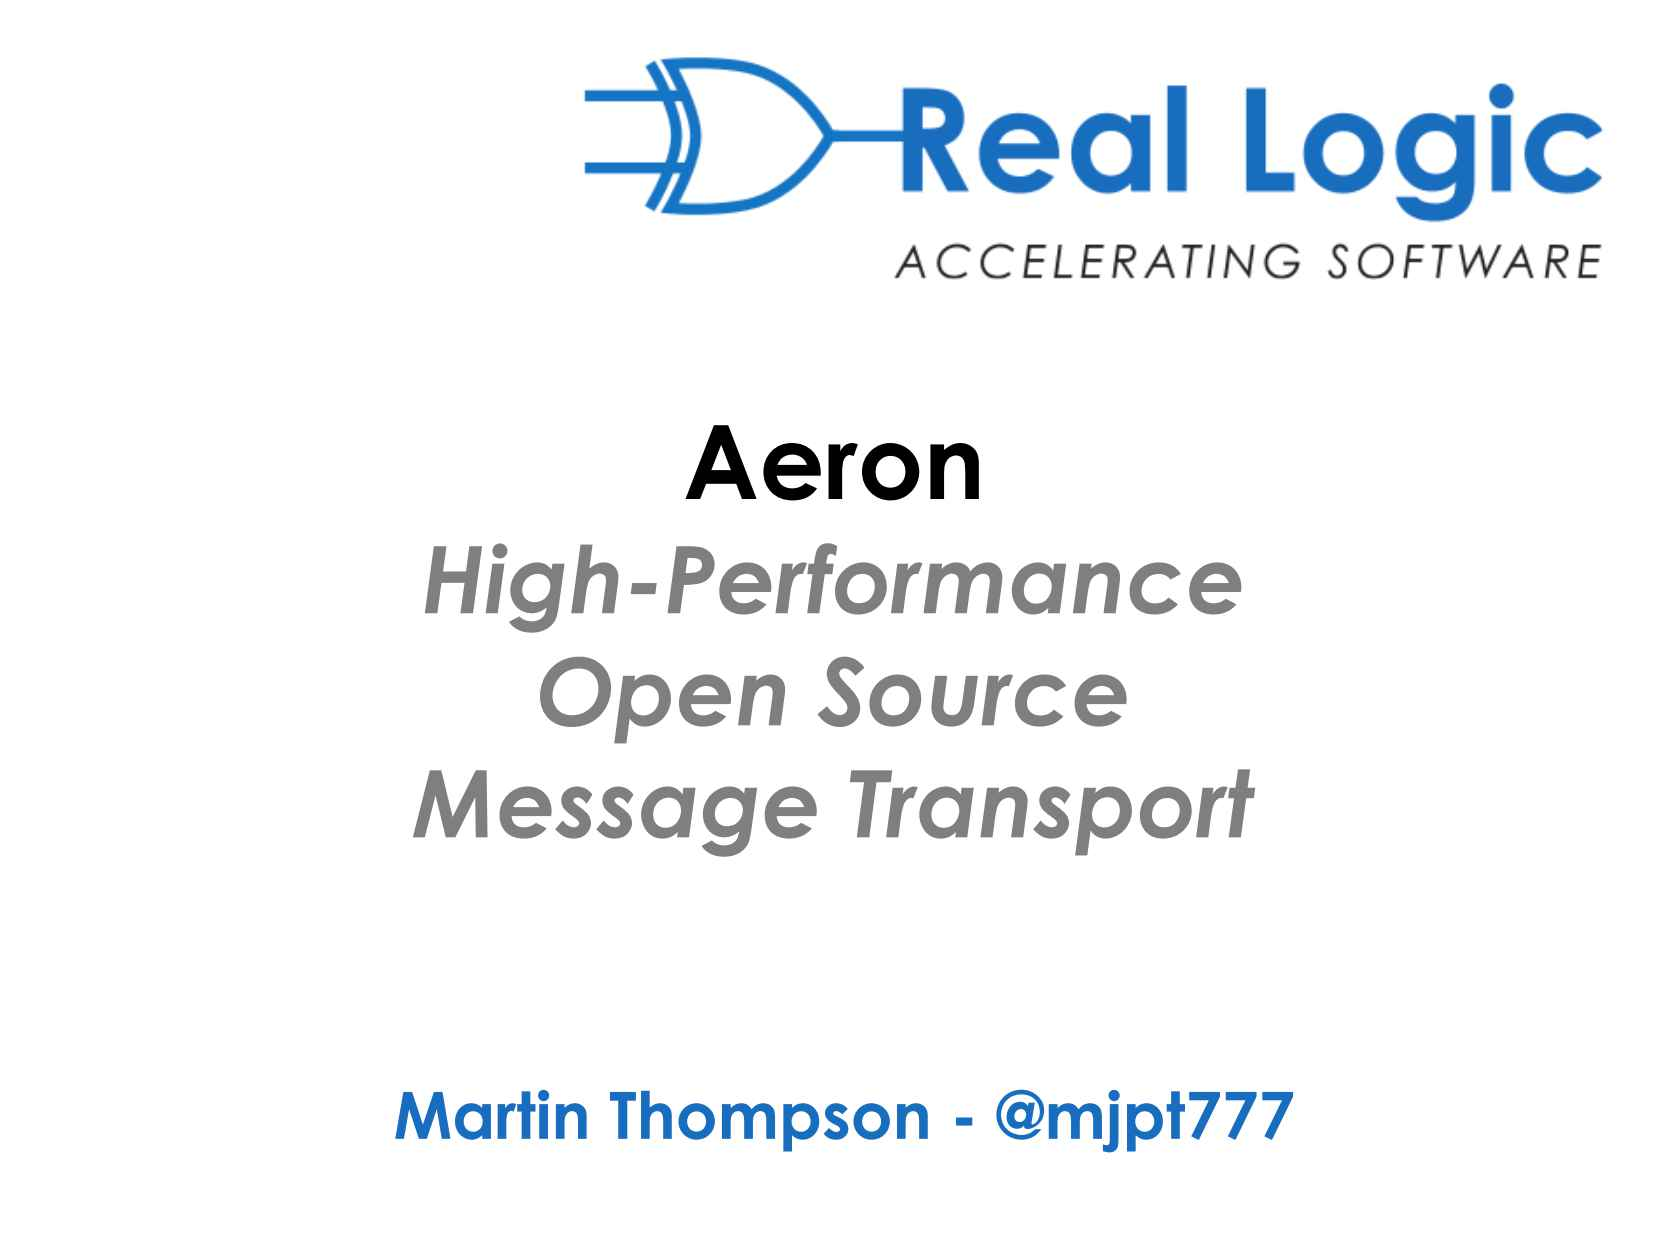 Aeron: The Next Generation in High-performance Messaging